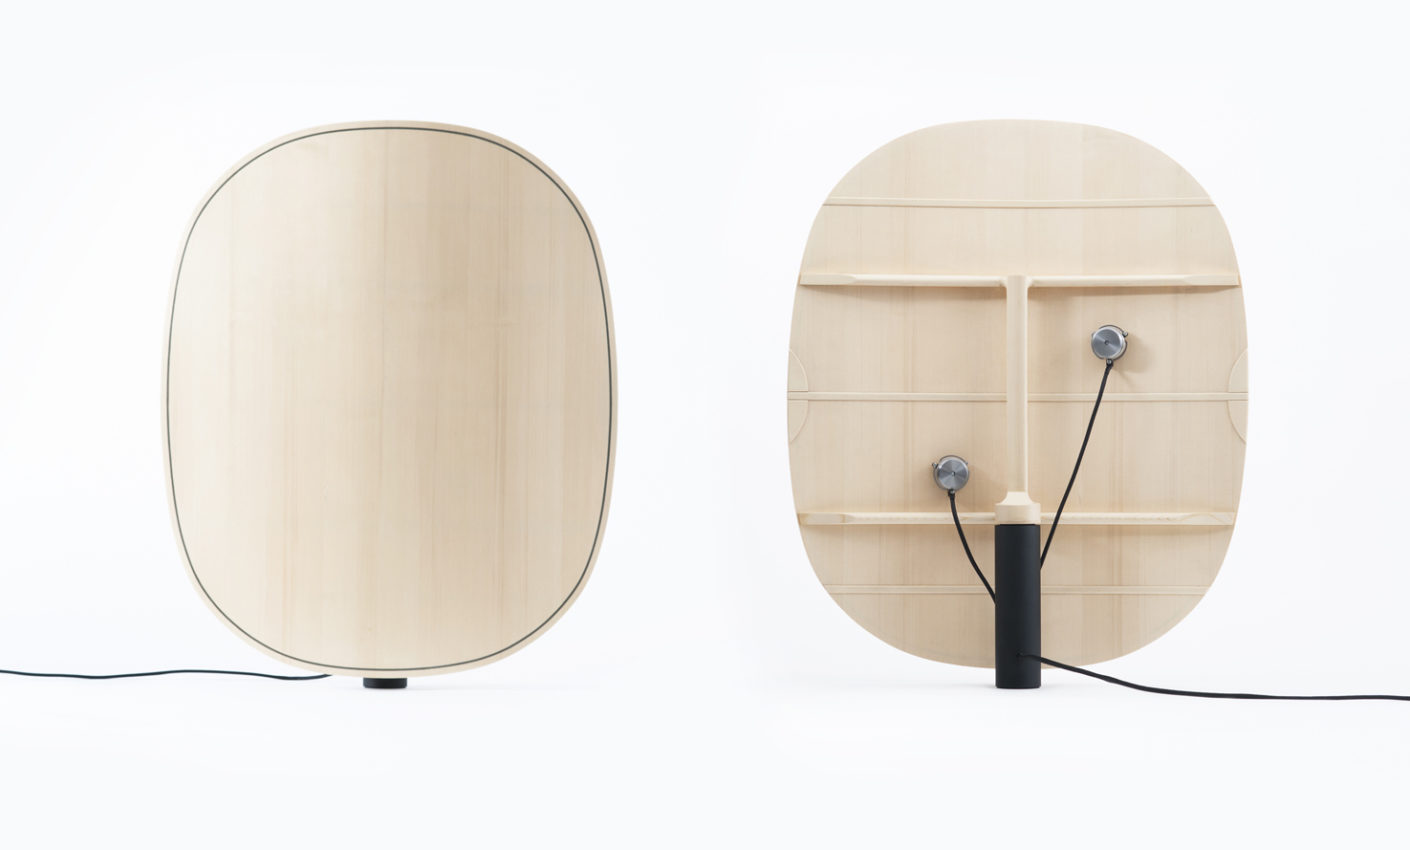 "Amplifier ""Surfaces Sonores"": The curved surface of the pressed plywood panels maximizes the sound of the buzzer."